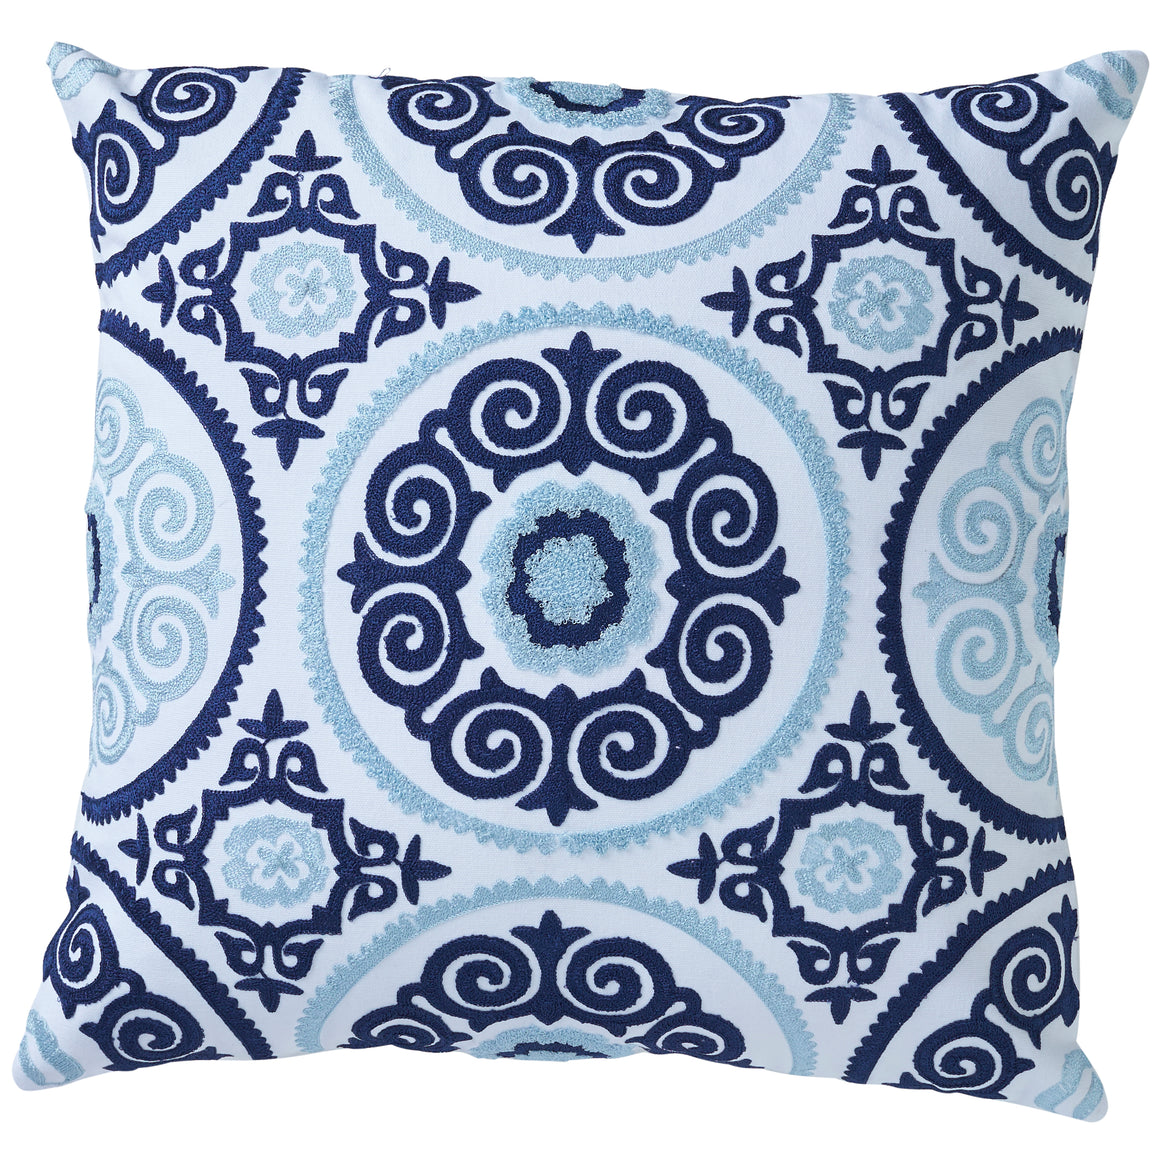 Suzana Sky Blue Cushion